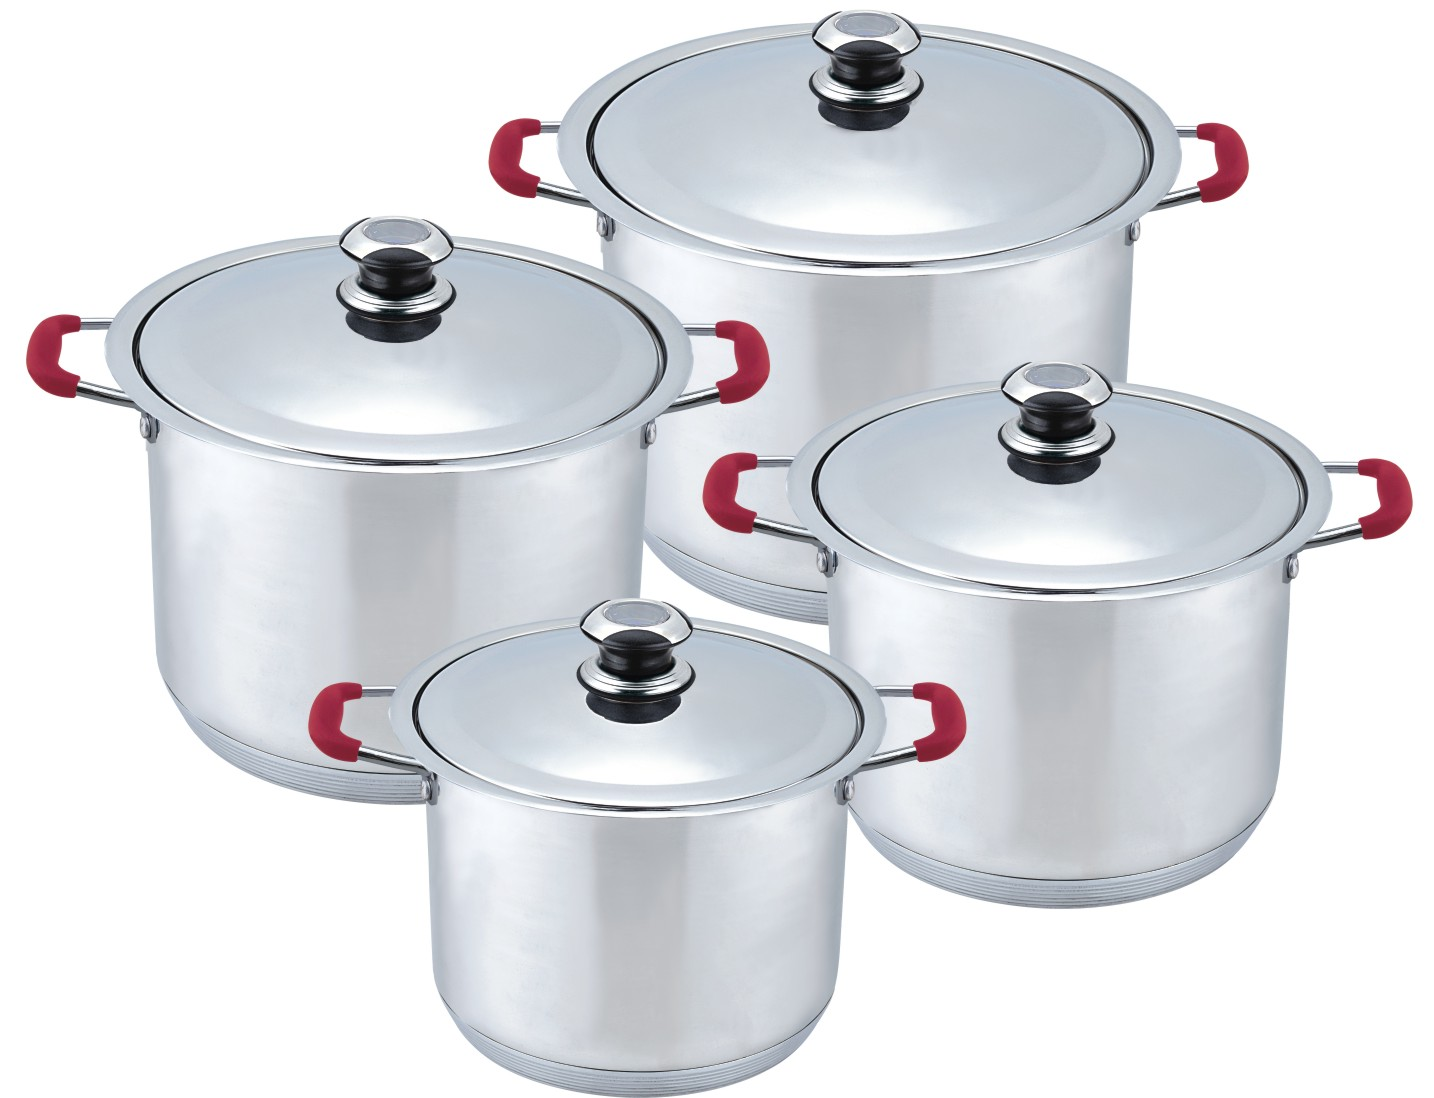 Heavy 8pcs metal Stock pot Walmart